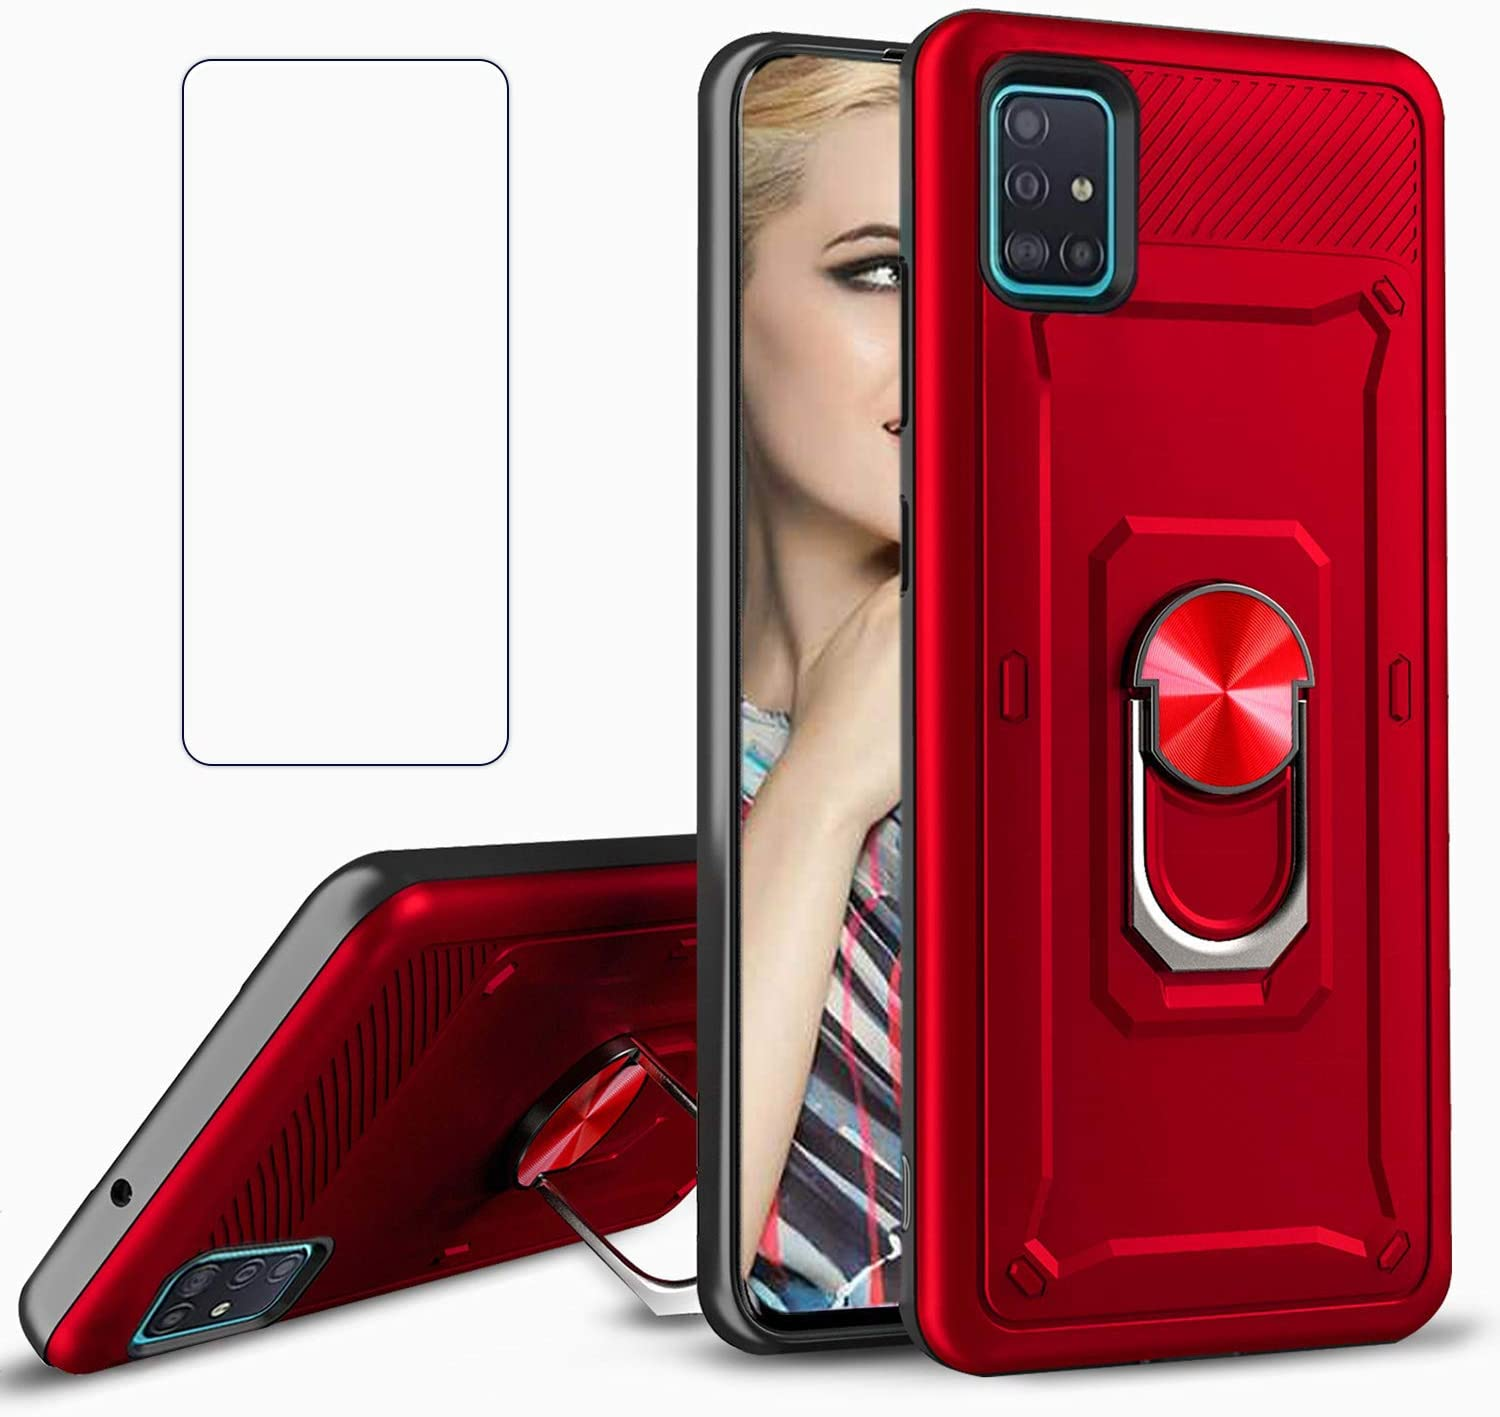 REAMOUNT for Samsung Galaxy A71 5G Case with Tempered Glass Screen Protector, Rugged Hybrid Armor Anti-Scratch Shockproof Kickstand Cover Compatible Magnetic Car Mount Ring Grip (Red)